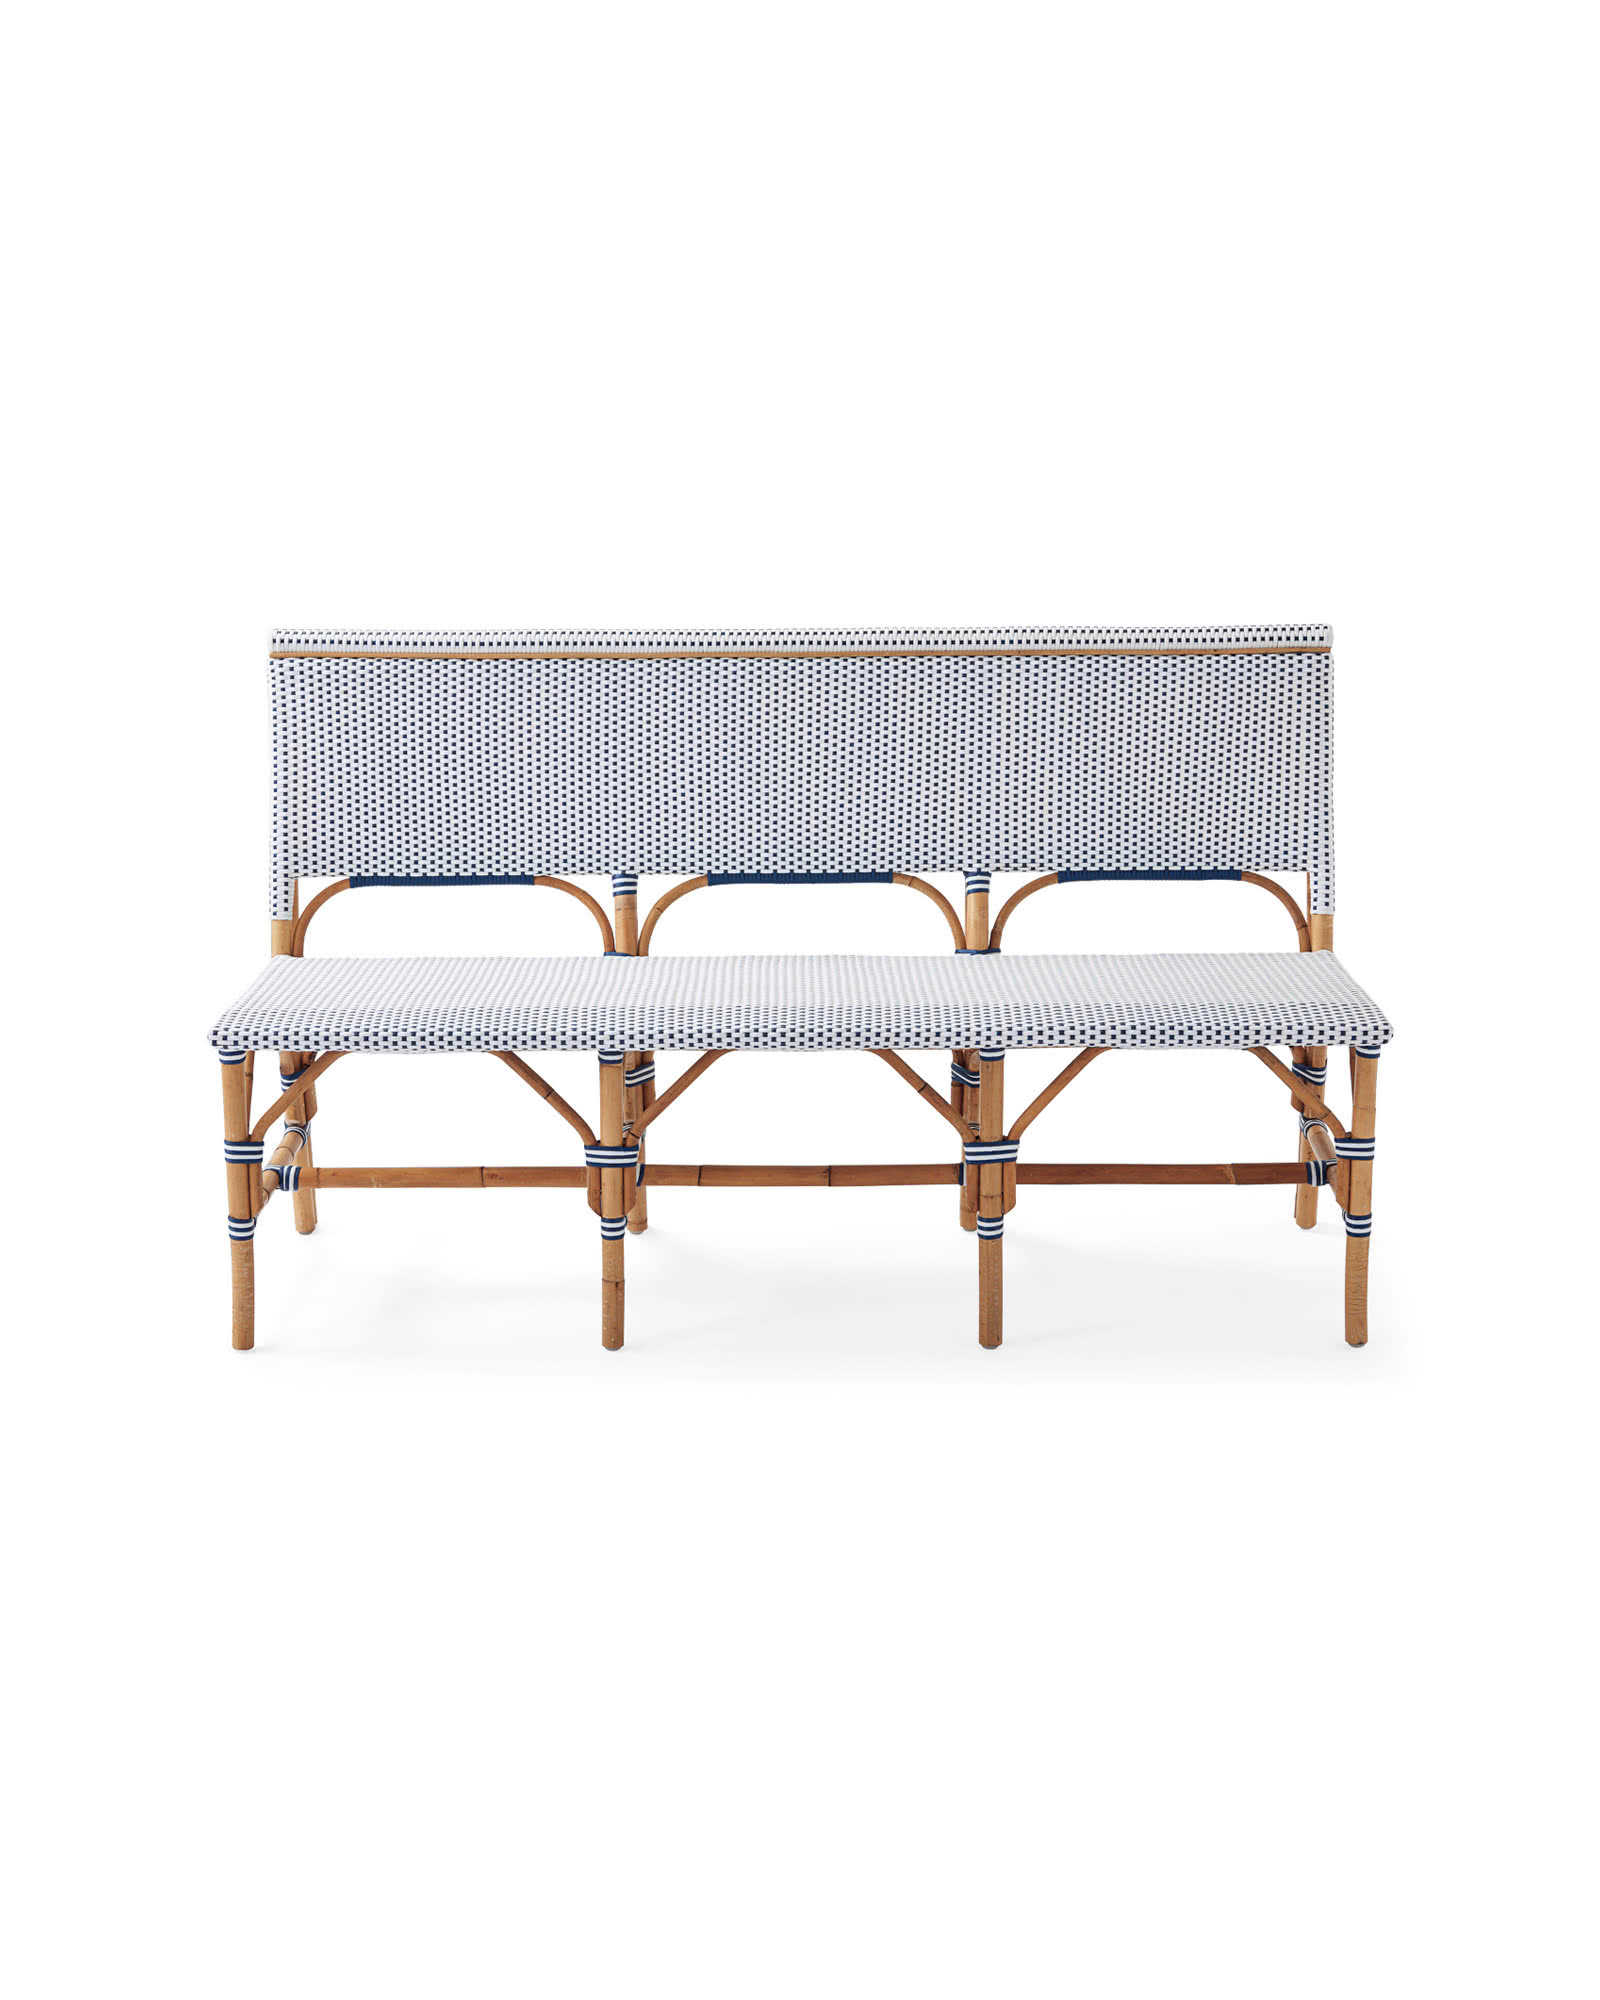 Strange Riviera Banquette Bench Andrewgaddart Wooden Chair Designs For Living Room Andrewgaddartcom